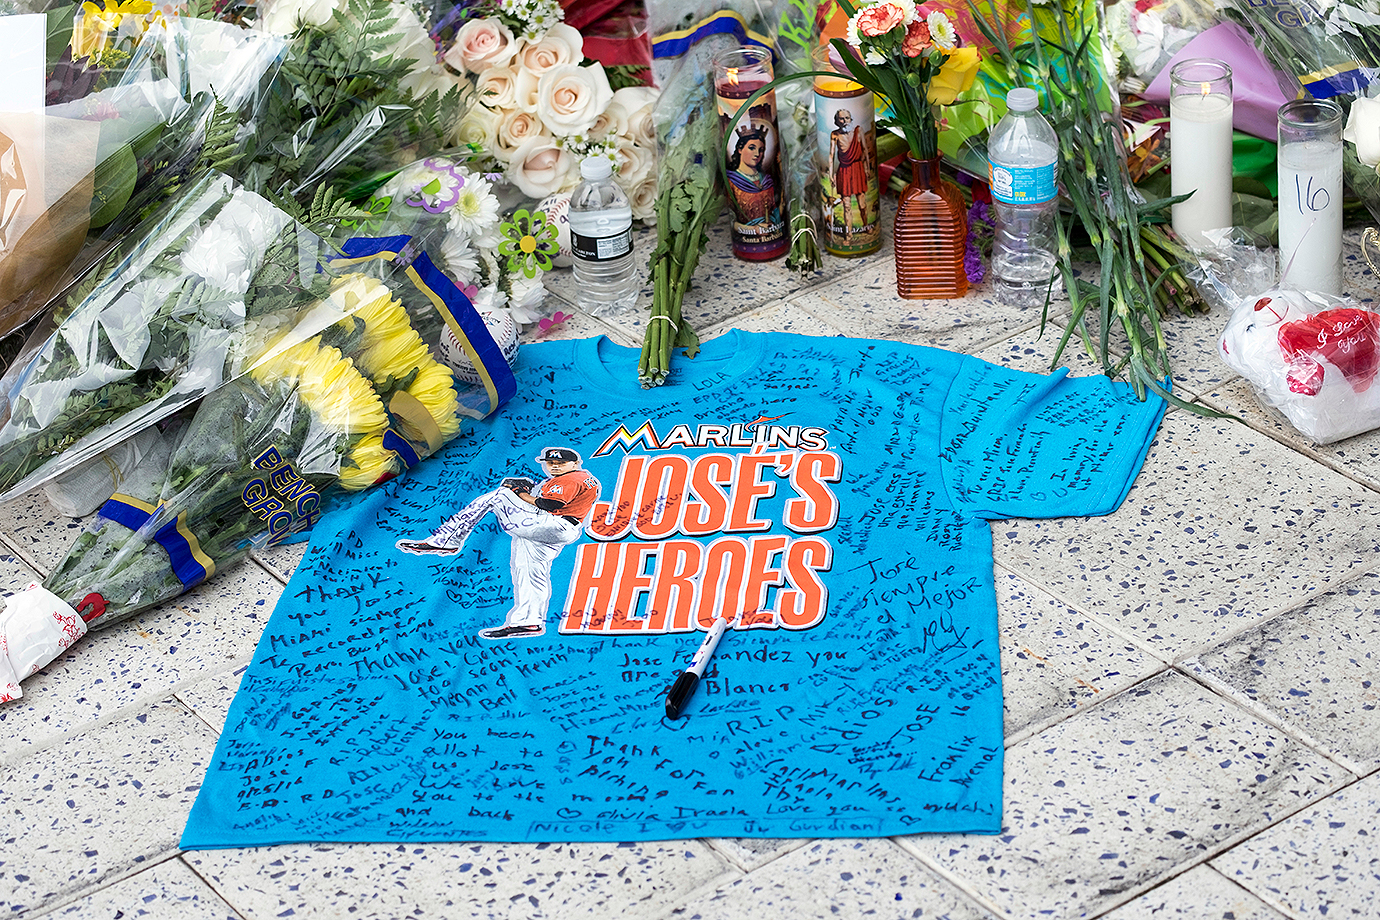 A remembrance shirt at a makeshift memorial in honor of Jose Fernandez sits outside Marlins Park on Sunday, Sept. 25, 2016 in Miami.